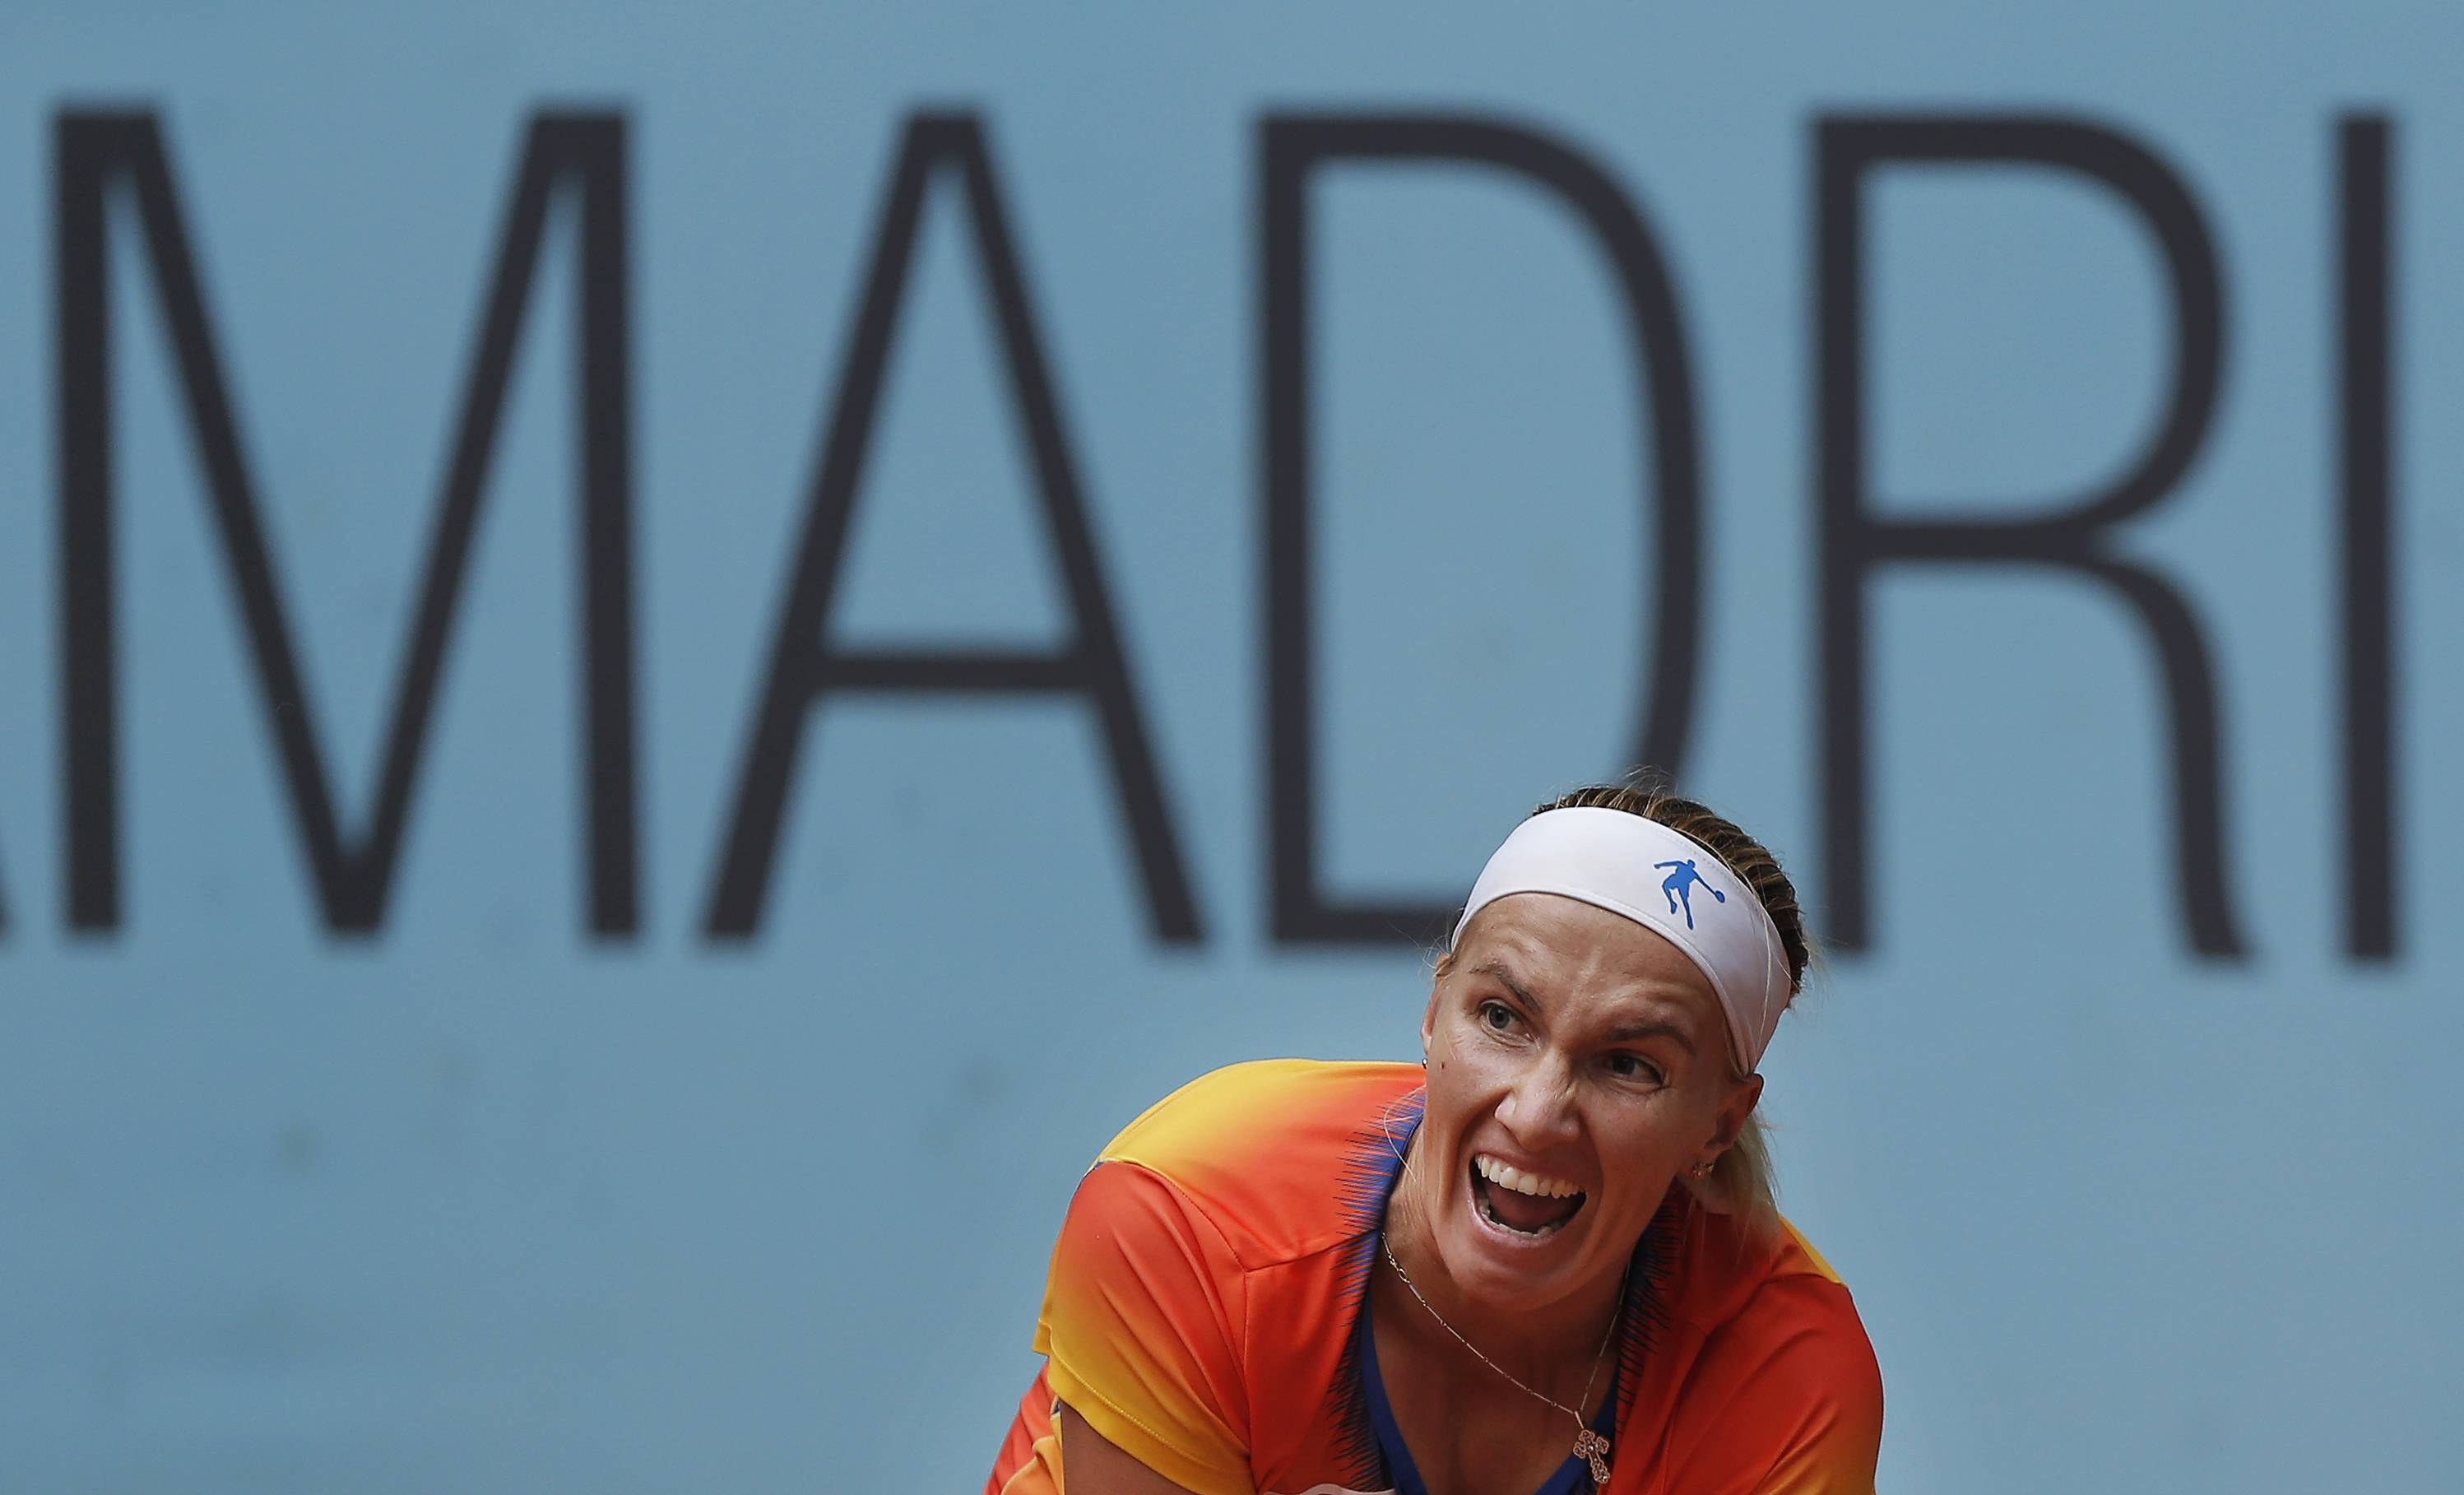 Svetlana Kuznetsova from Russia reacts during a Madrid Open tennis tournament match against Agnieszka Radwanska from Poland, in Madrid, Spain, Wednesday, May 7, 2014.